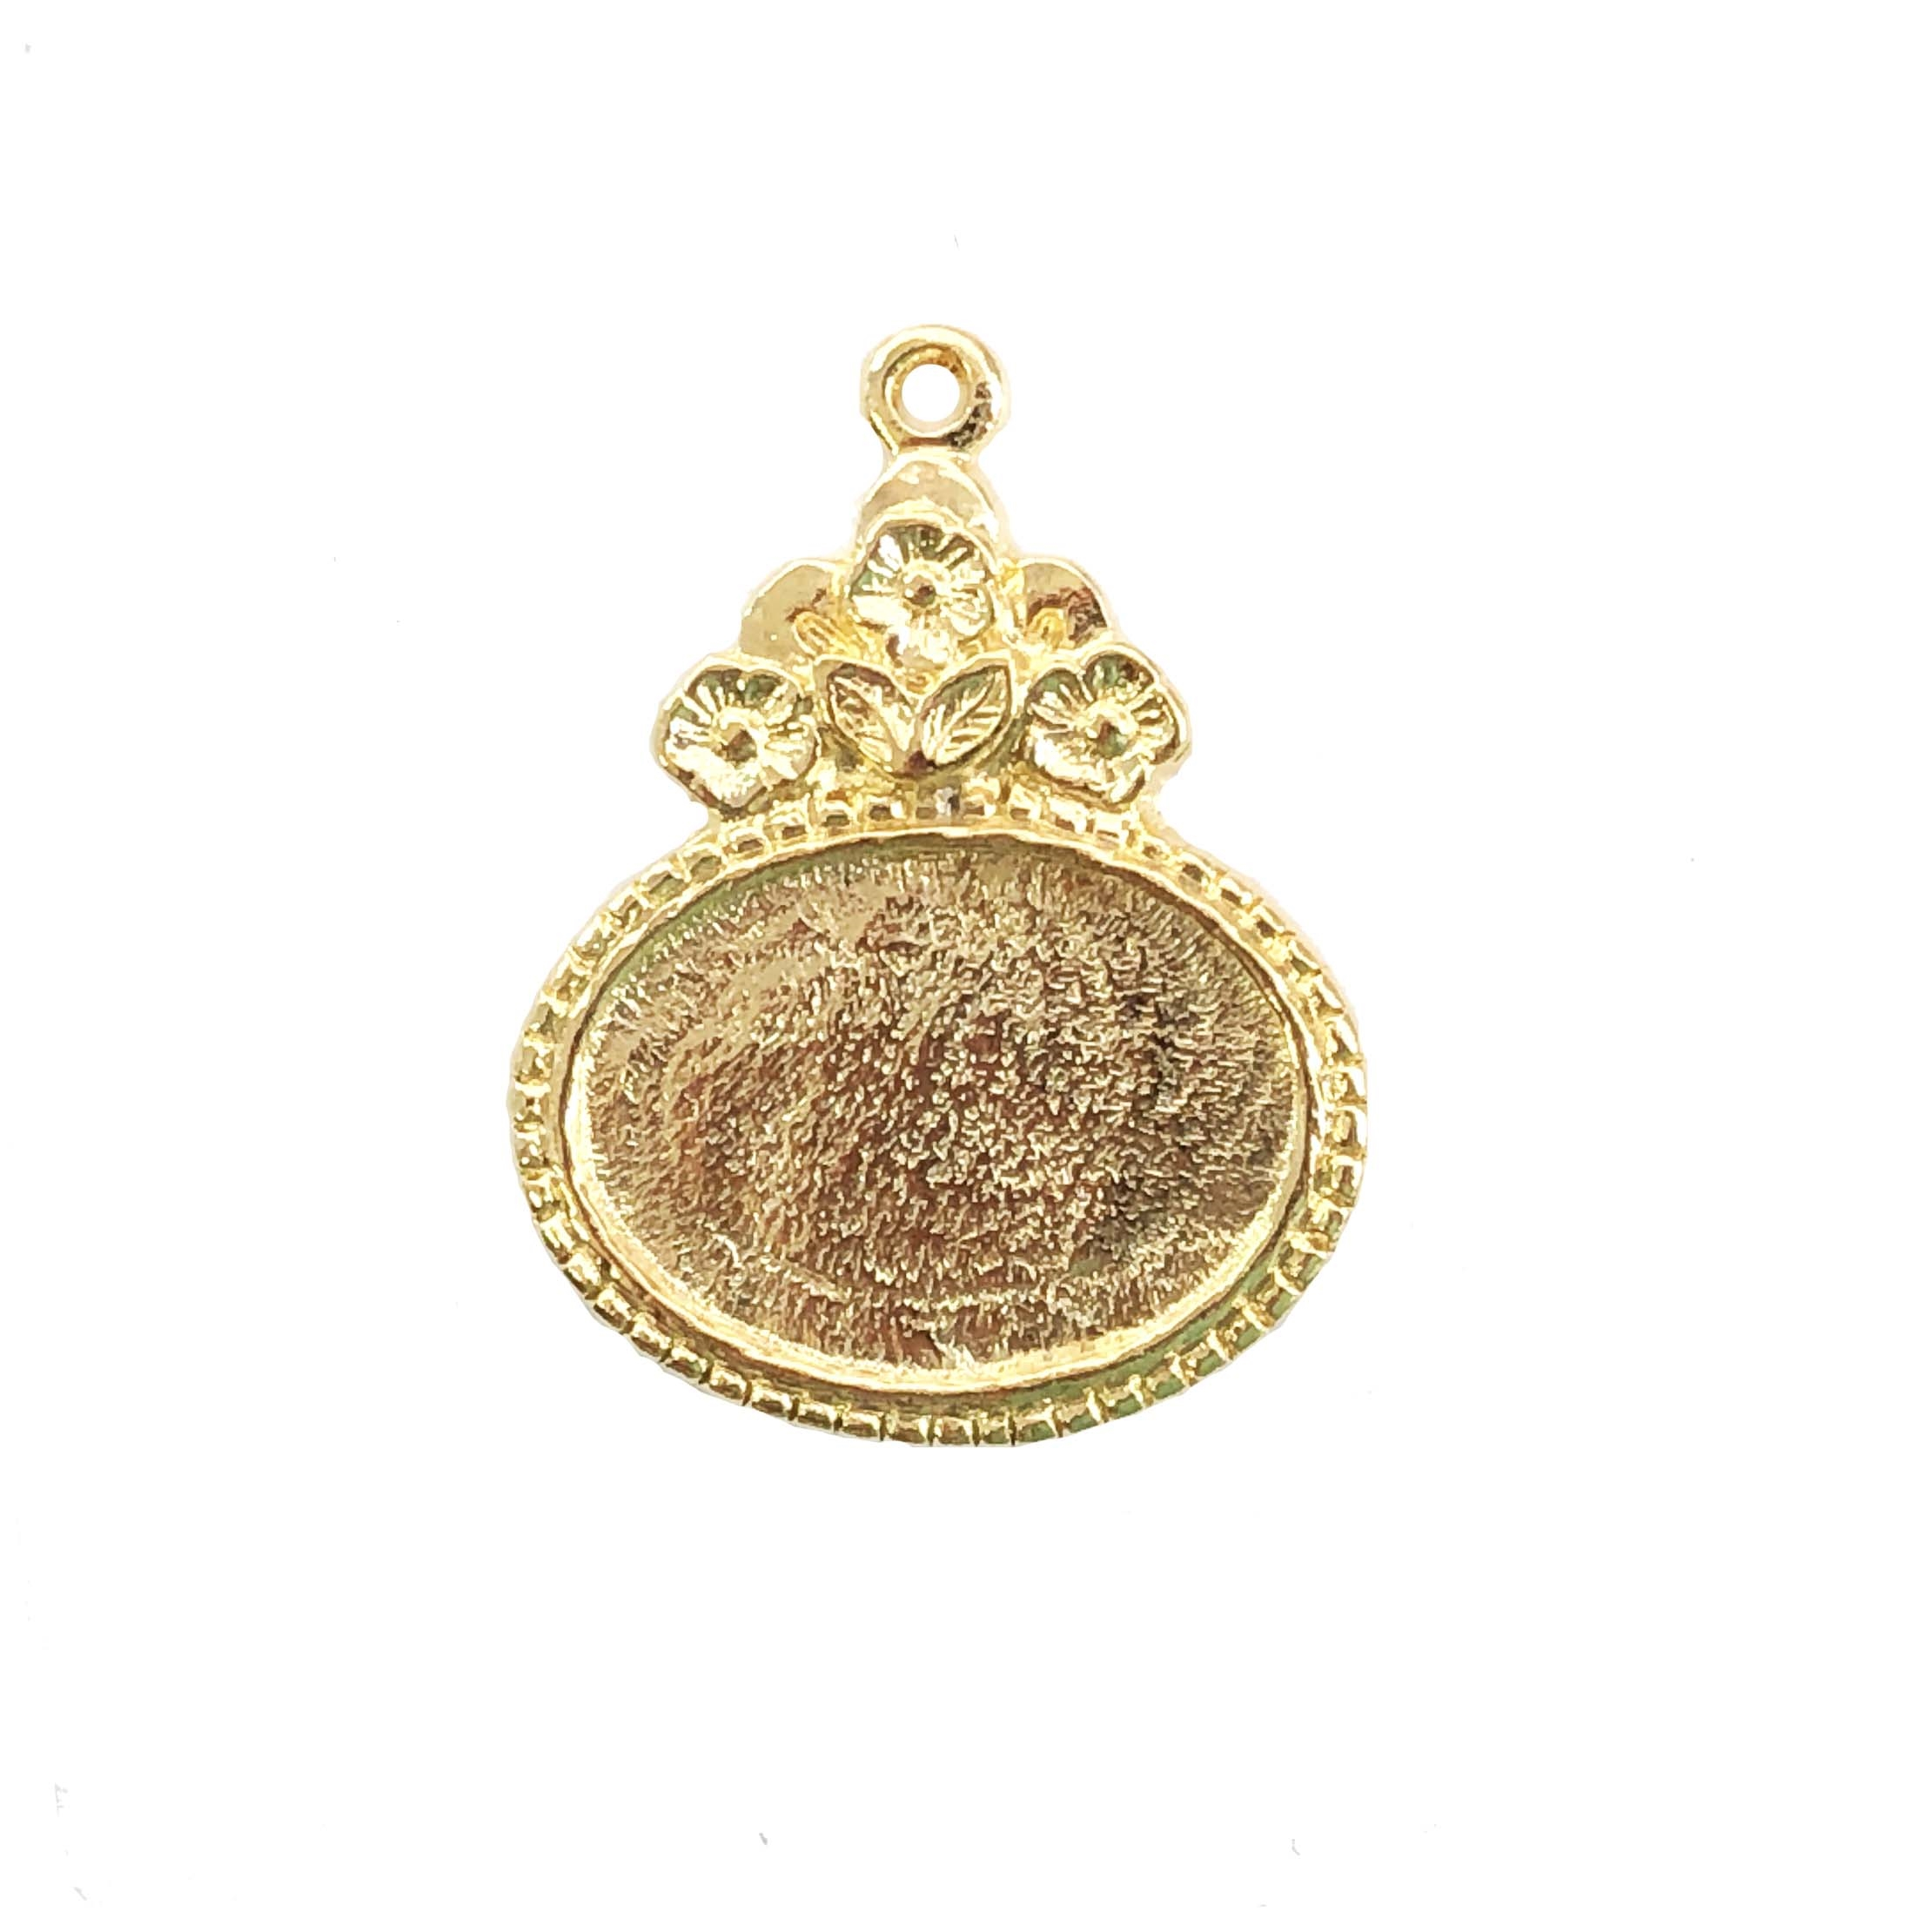 floral pendant mount, B'sue by 1928, floral mount, cameo mount, stone mount, 22K gold, gold finish, mount, vintage, lead-free pewter, vintage castings, US-made, vintage supplies, 1928 Jewelry, B'sue Boutiques, 18x13mm mount, pendant, floral mount, 062